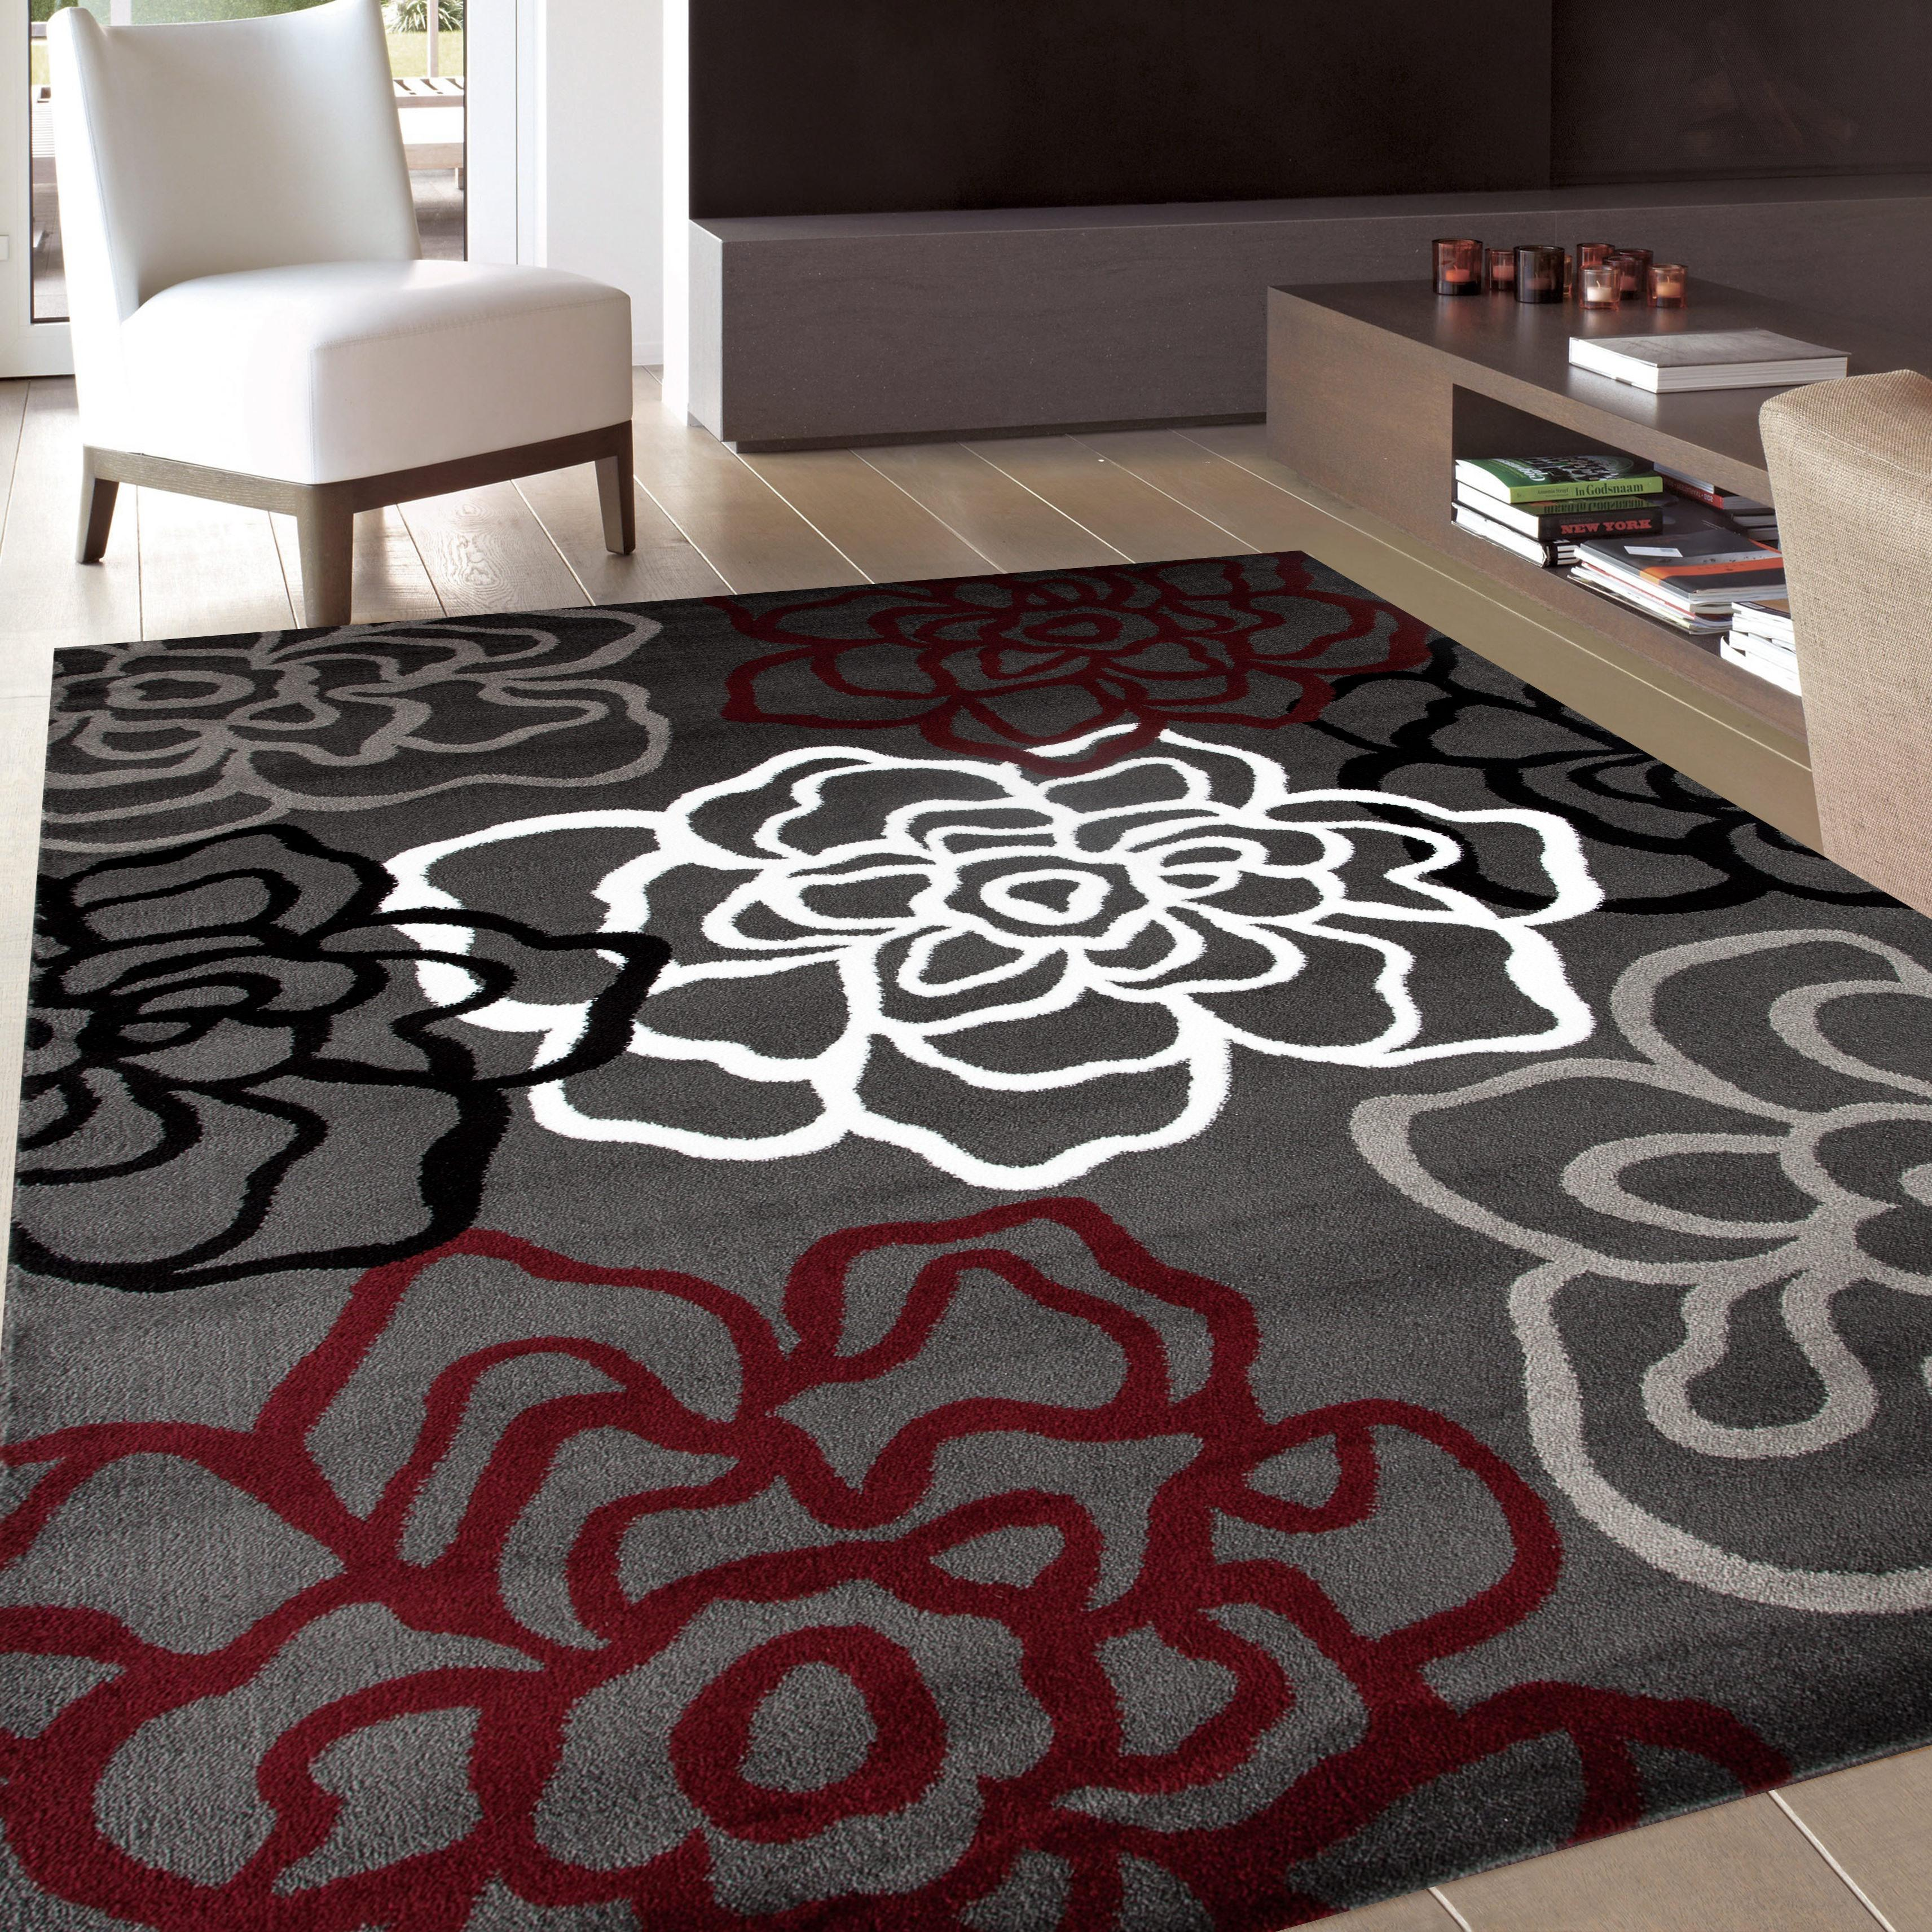 Contemporary Kitchen Rugs: Amazon.com: Rugshop Contemporary Modern Floral Flowers